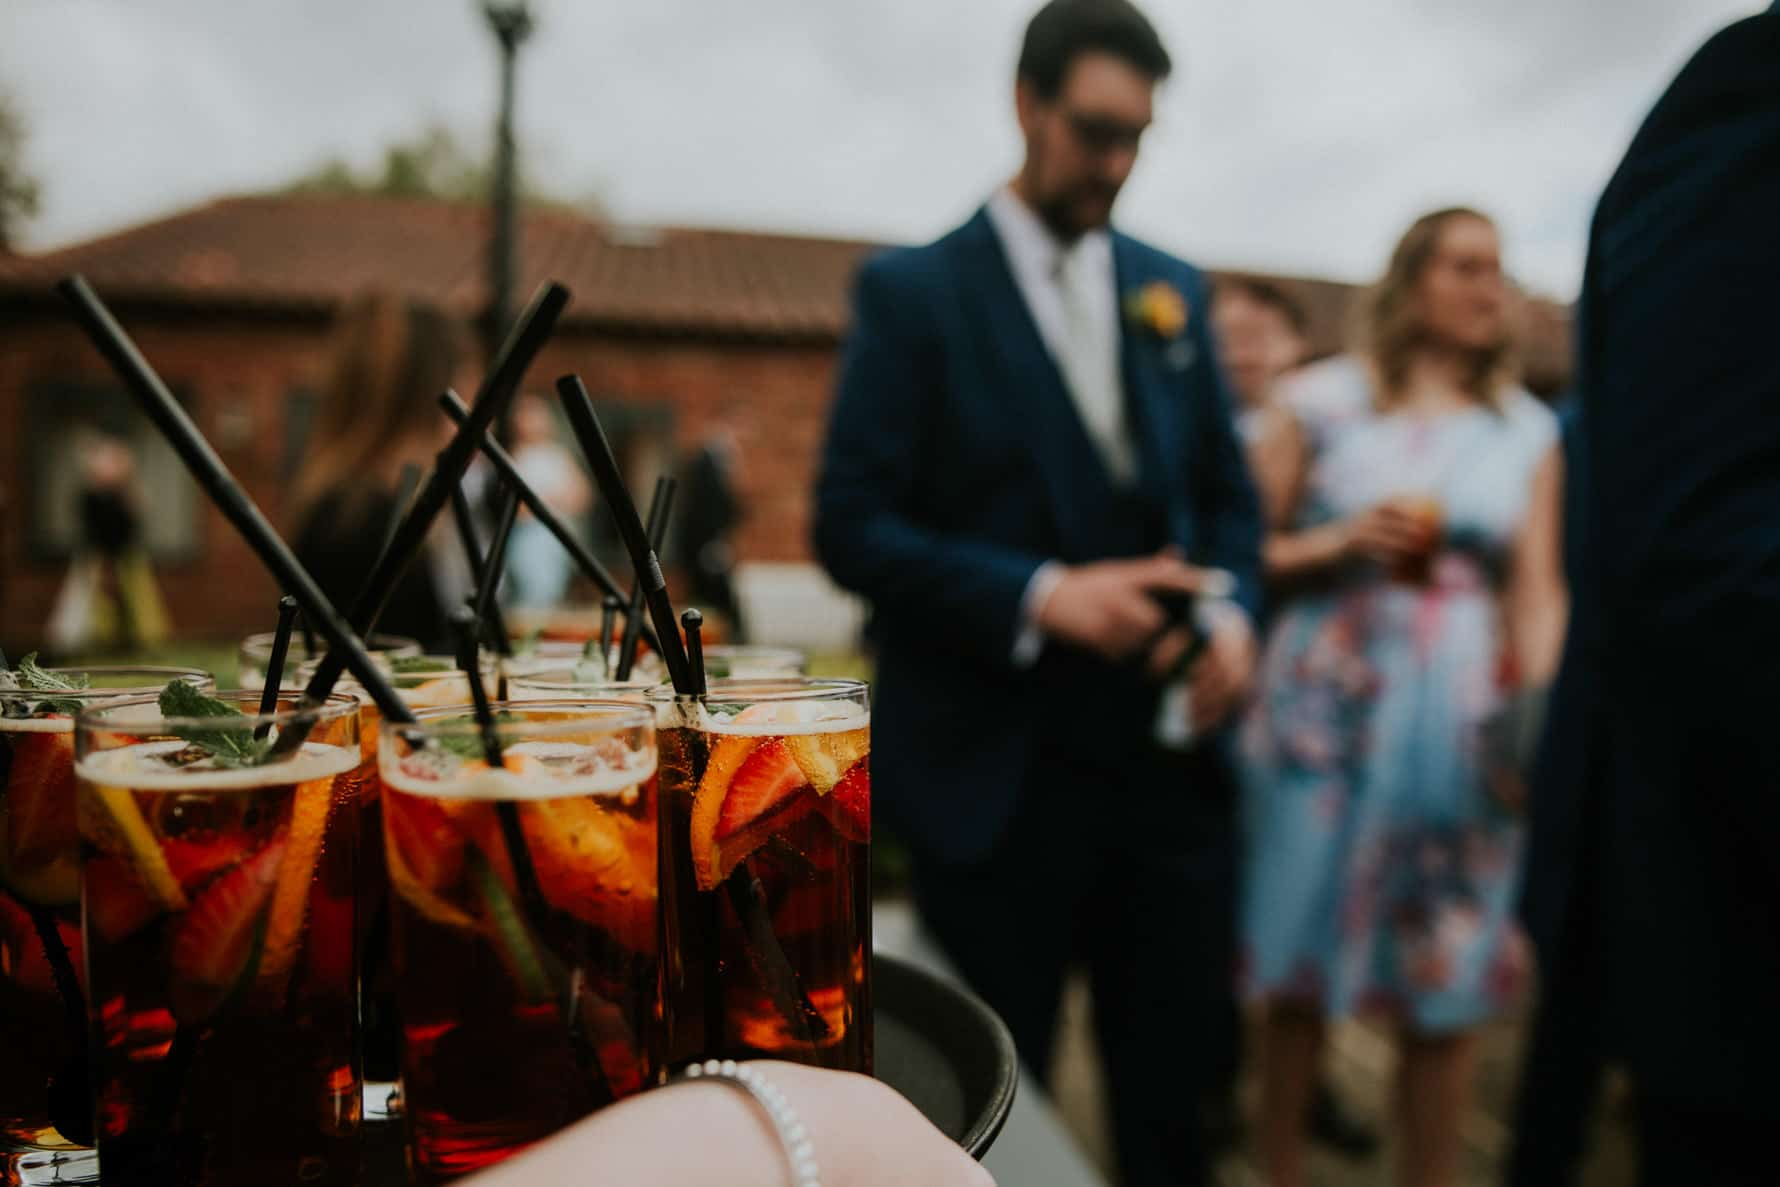 A tray of Pimms at a wedding reception